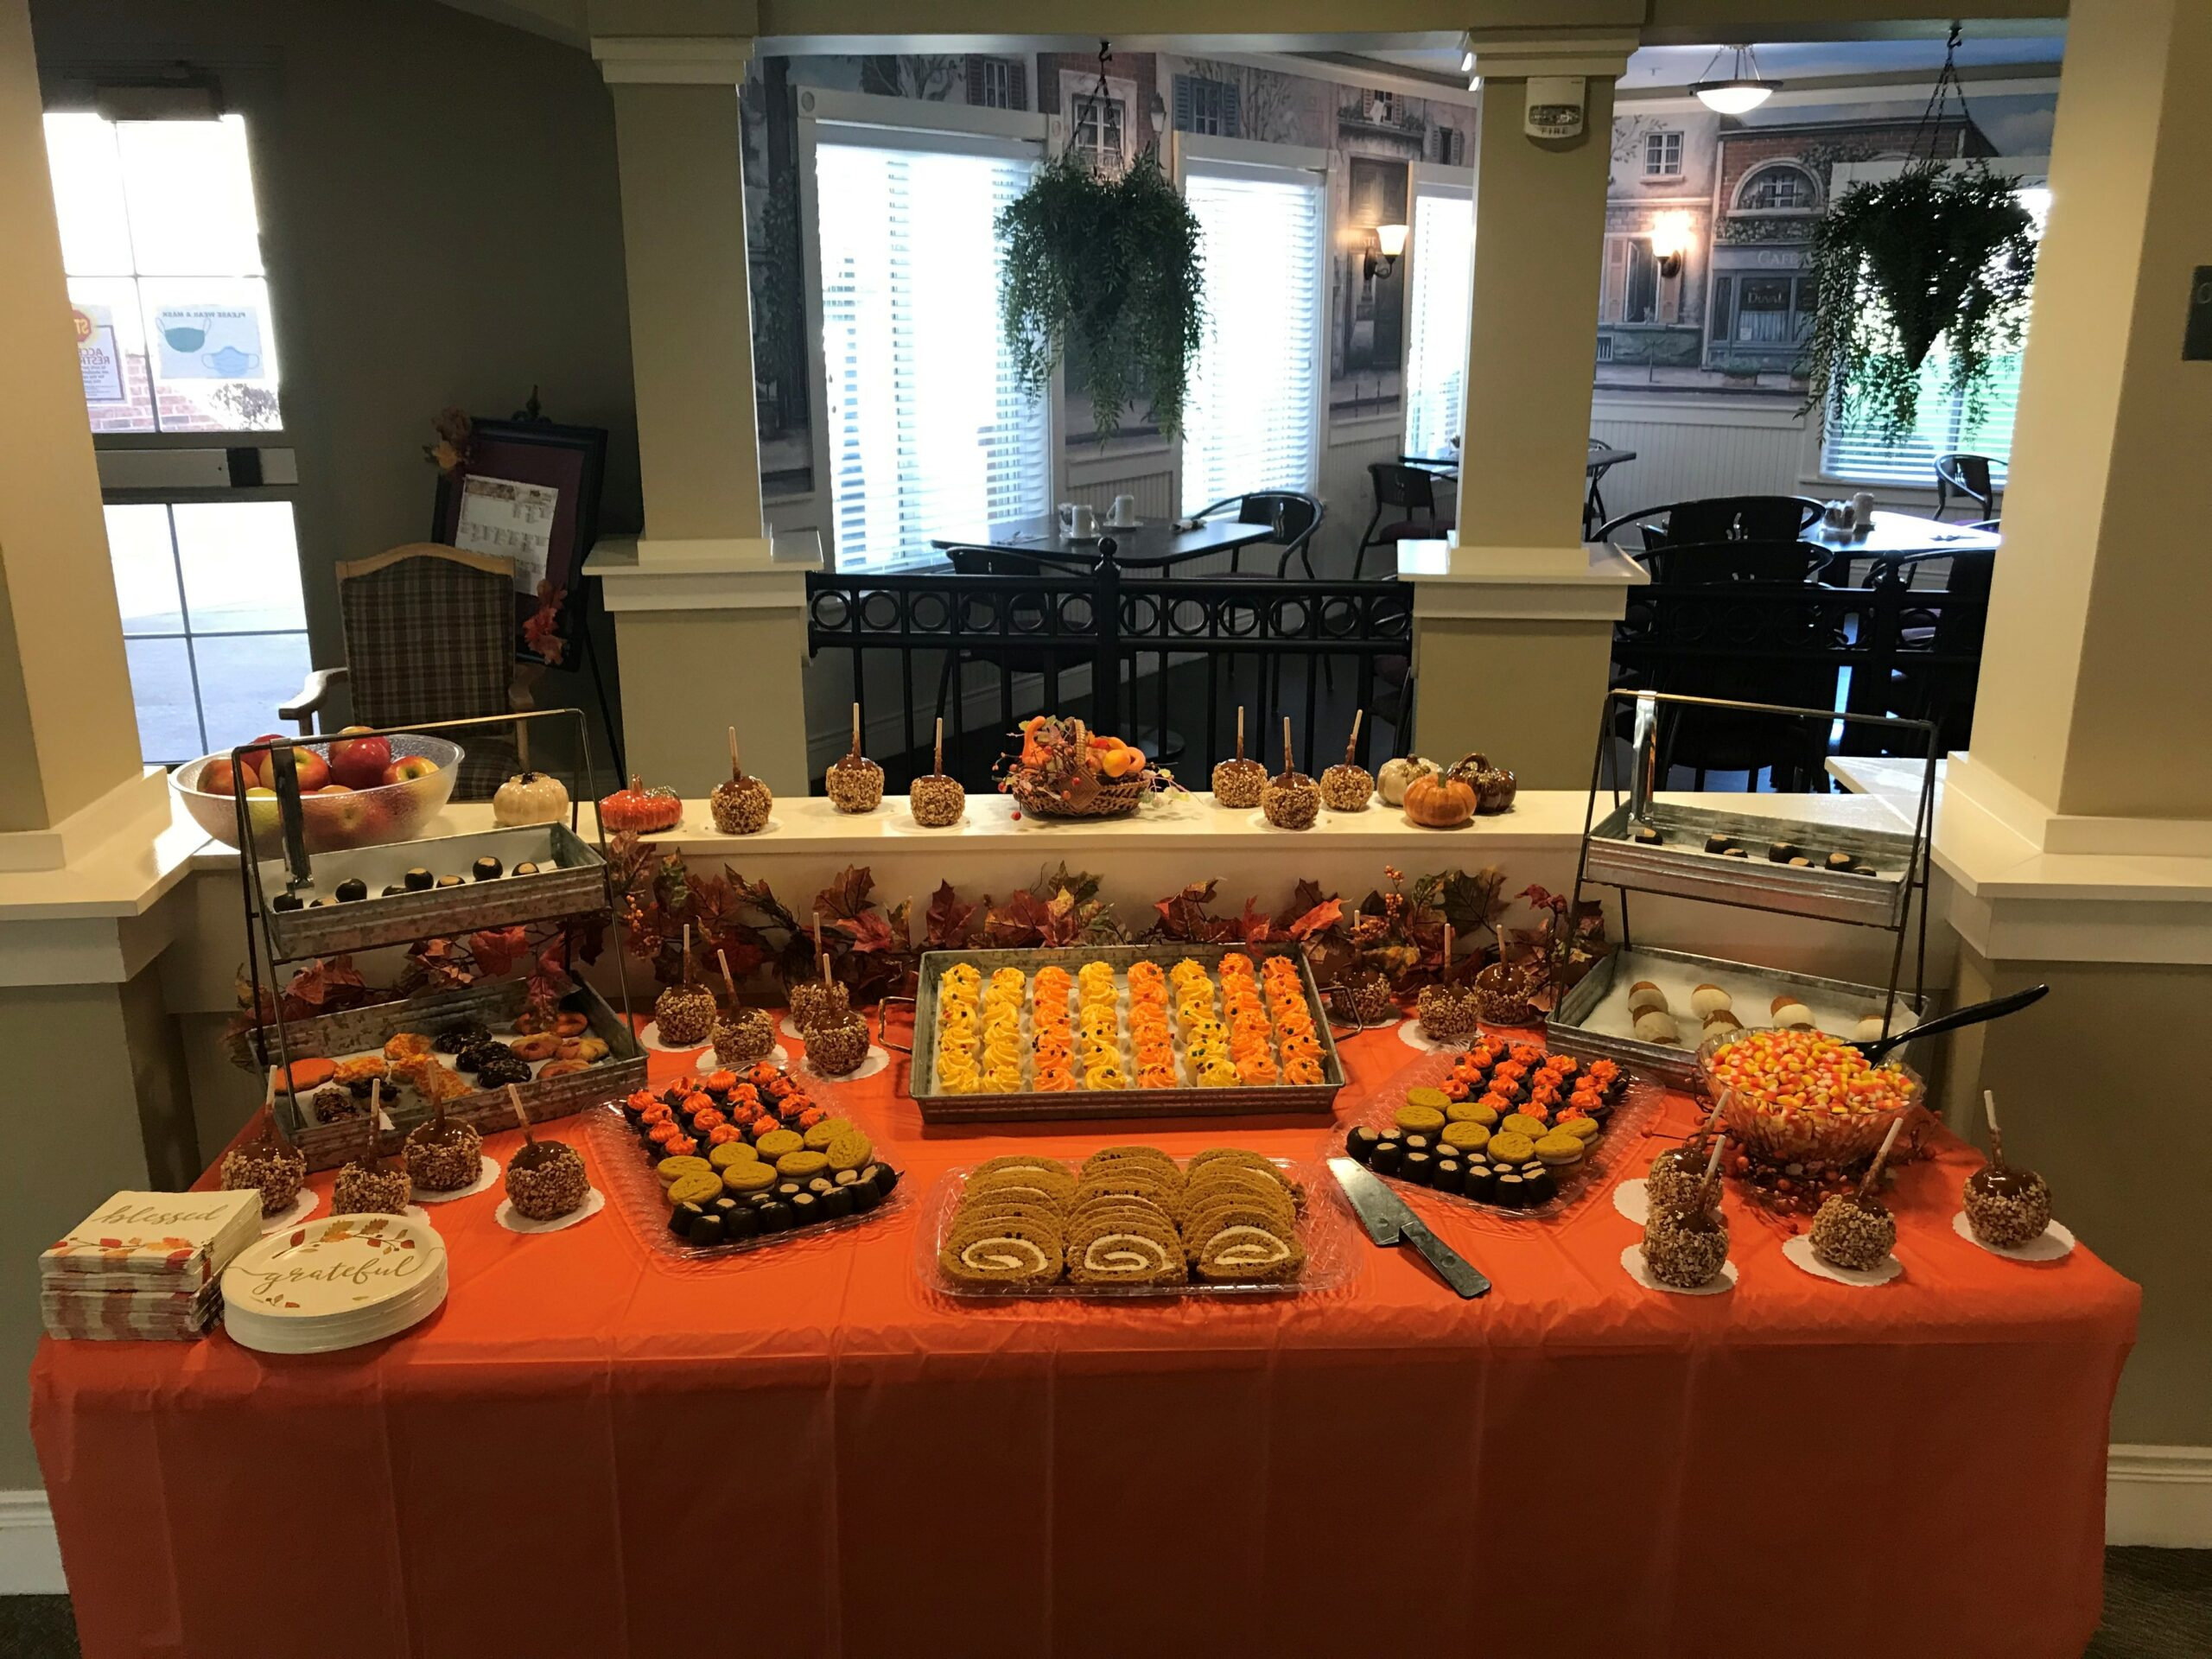 Residents welcomed Fall with a themed desert bar.